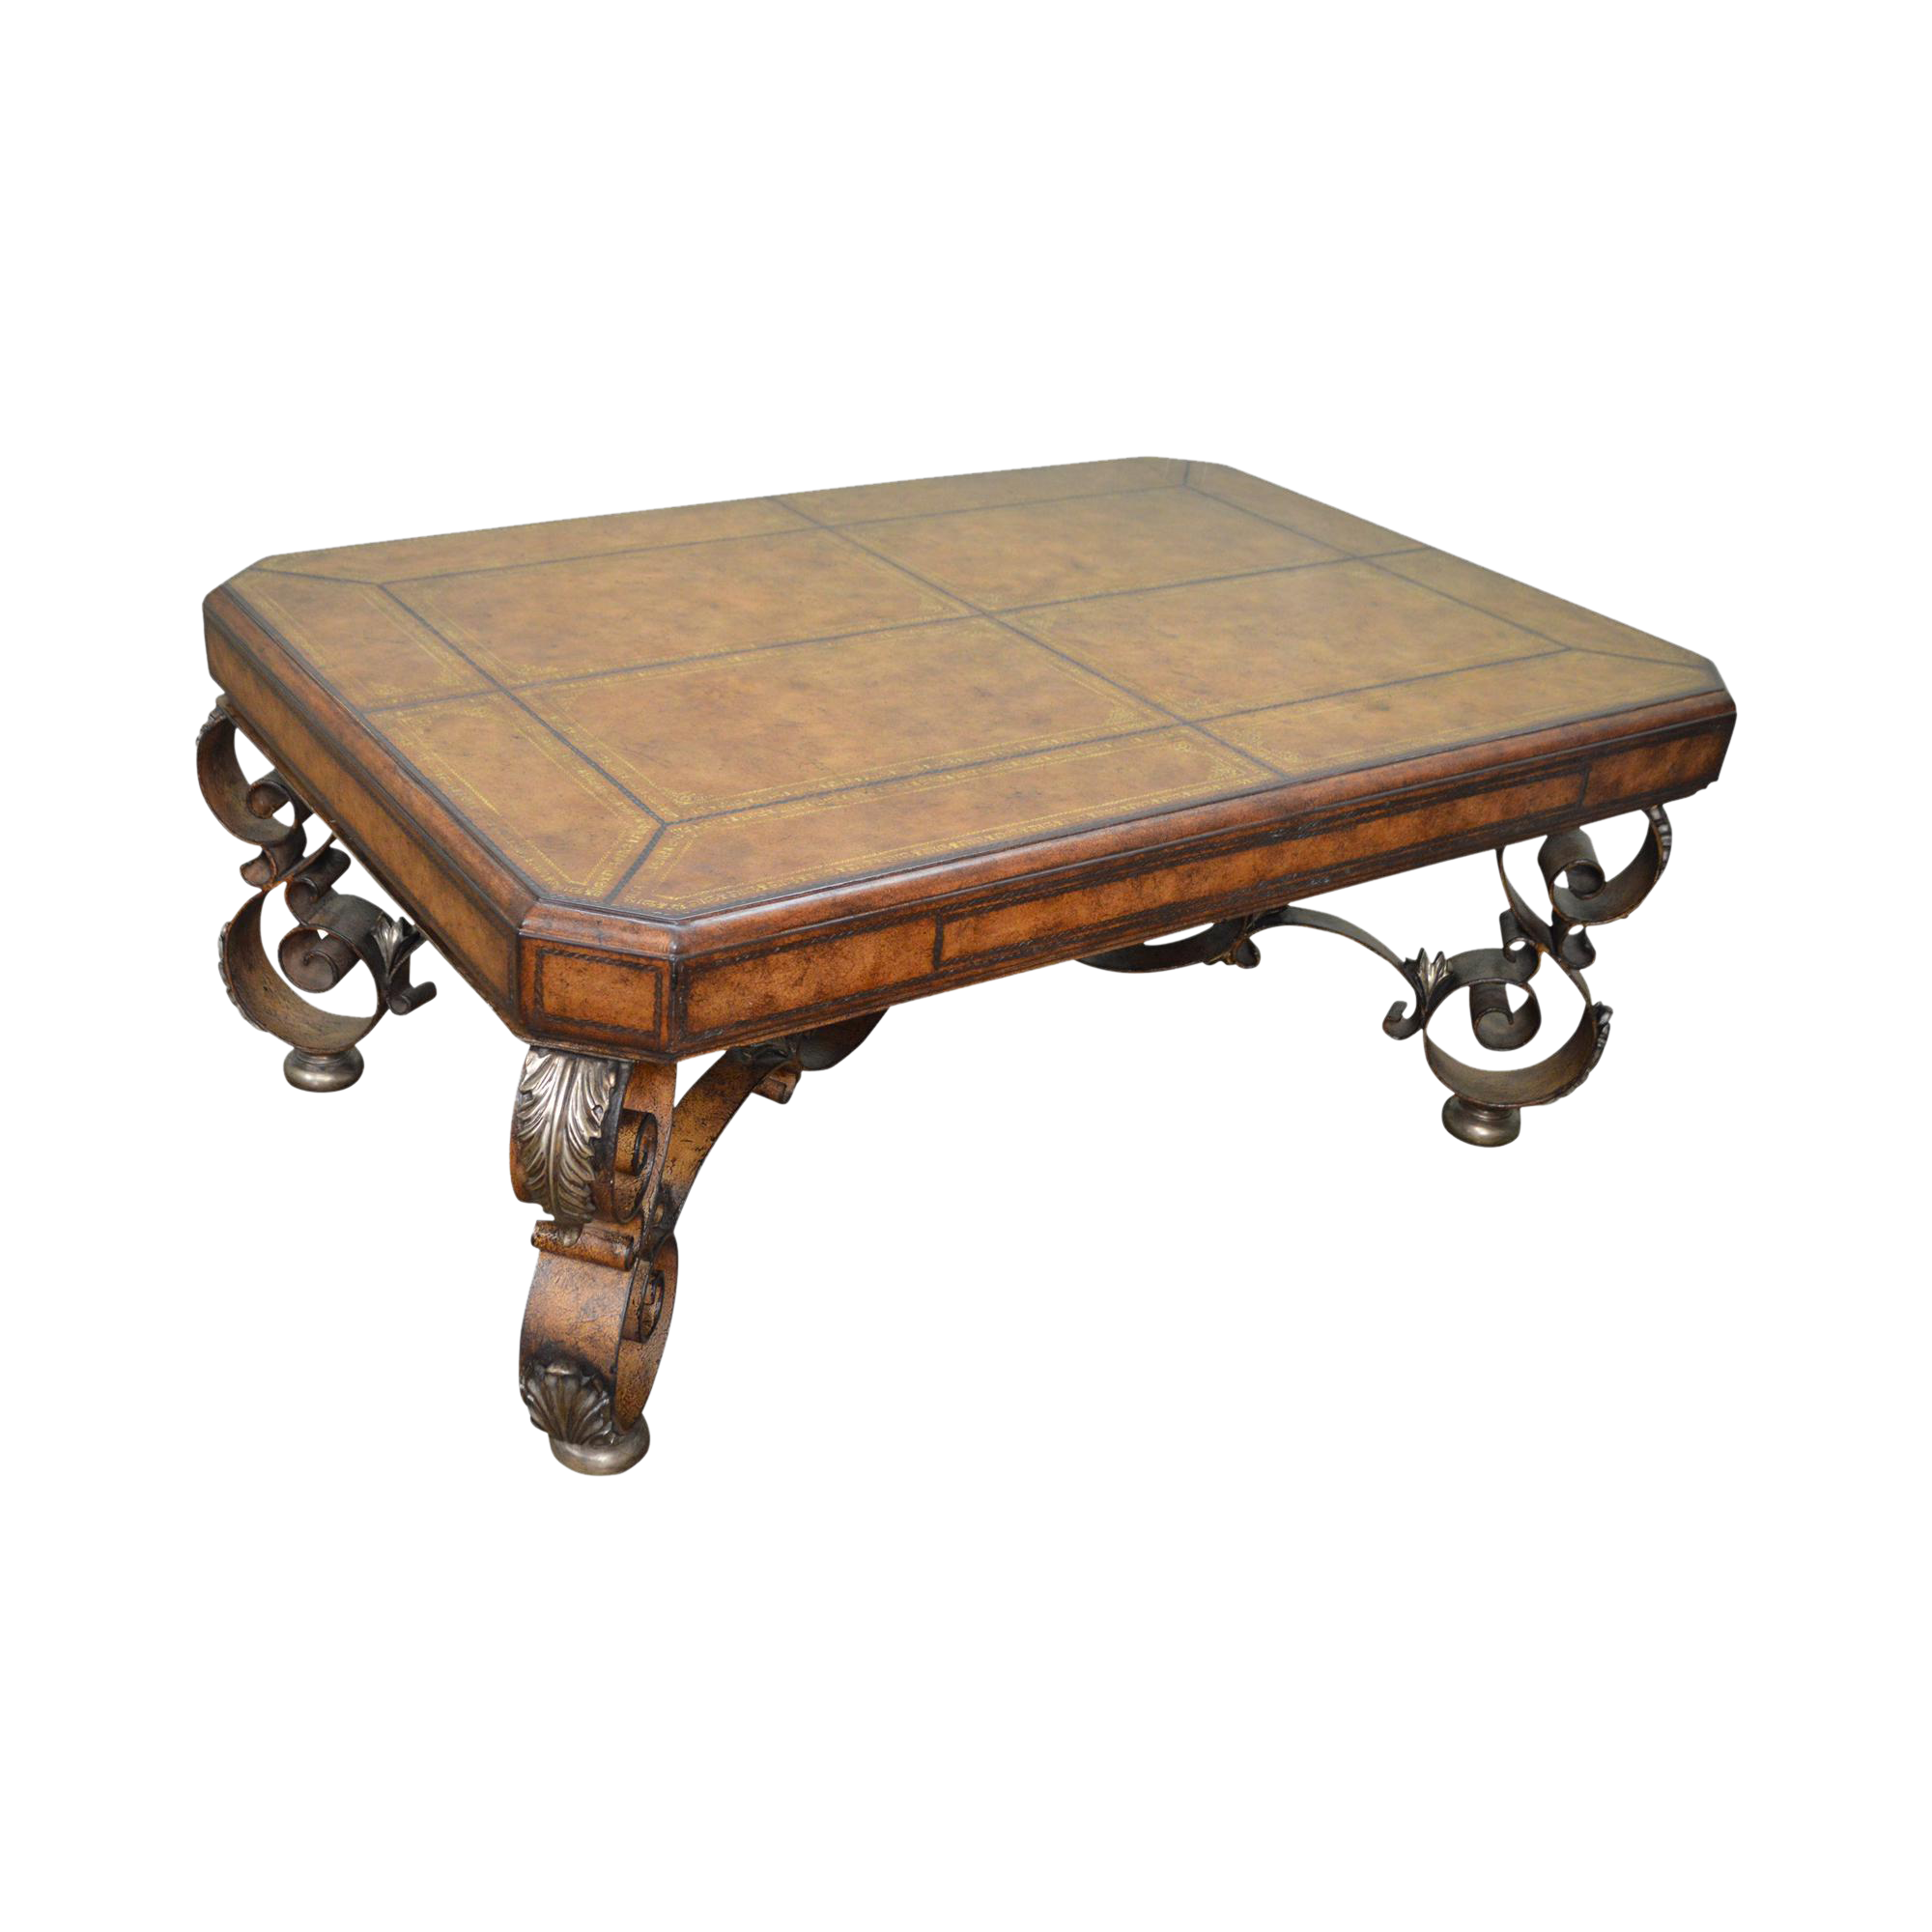 Tooled Leather Top Iron Base Regency Style Large Coffee Cocktail Table